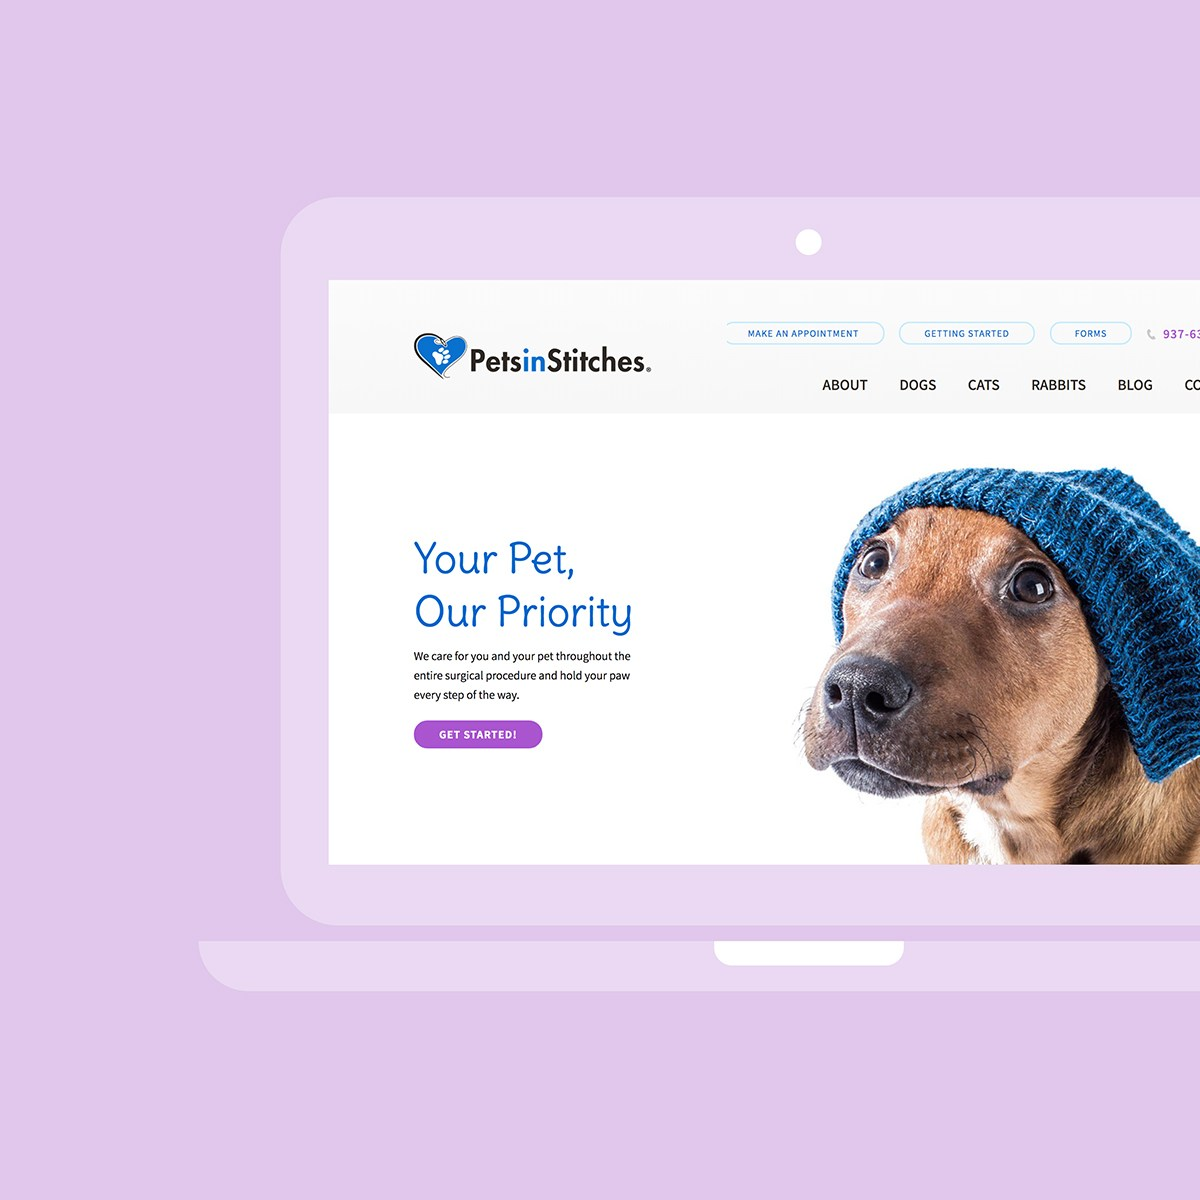 A screenshot of petsinstitches.com homepage